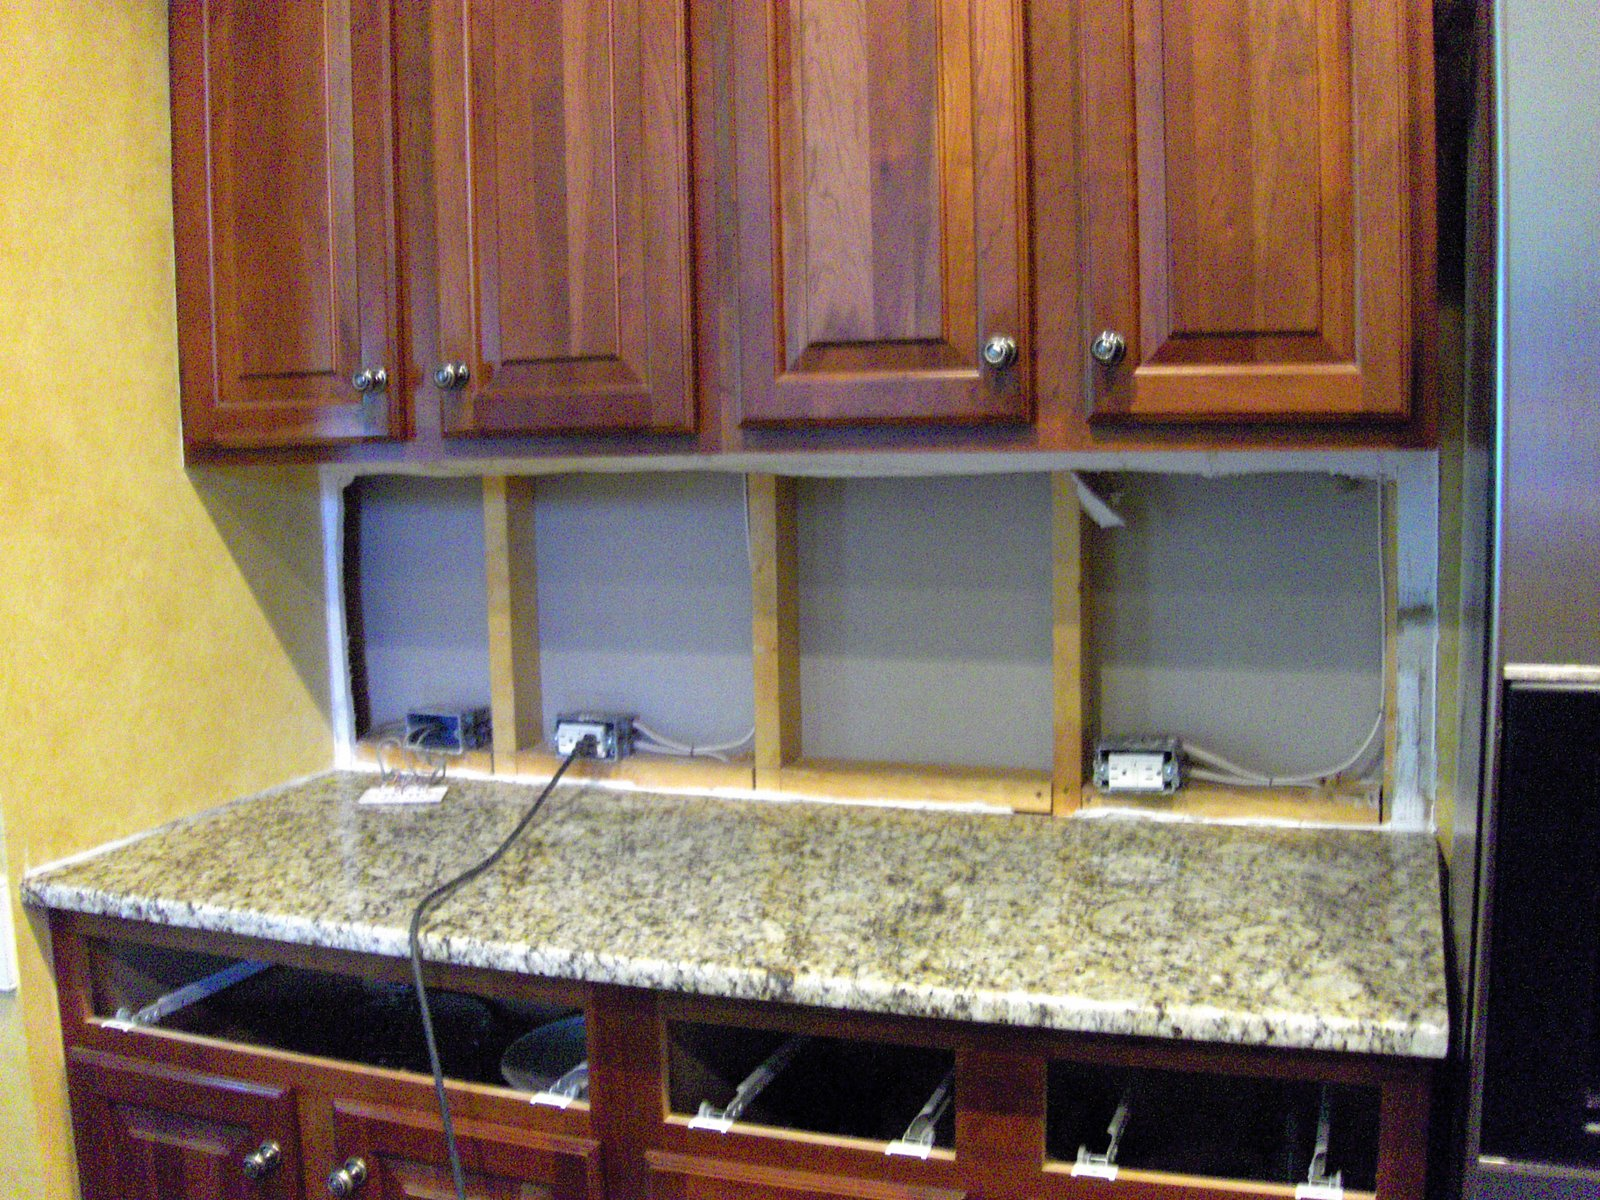 Under Cabinet Lighting Hardwire Undercabinet Lighting Under Cabinet